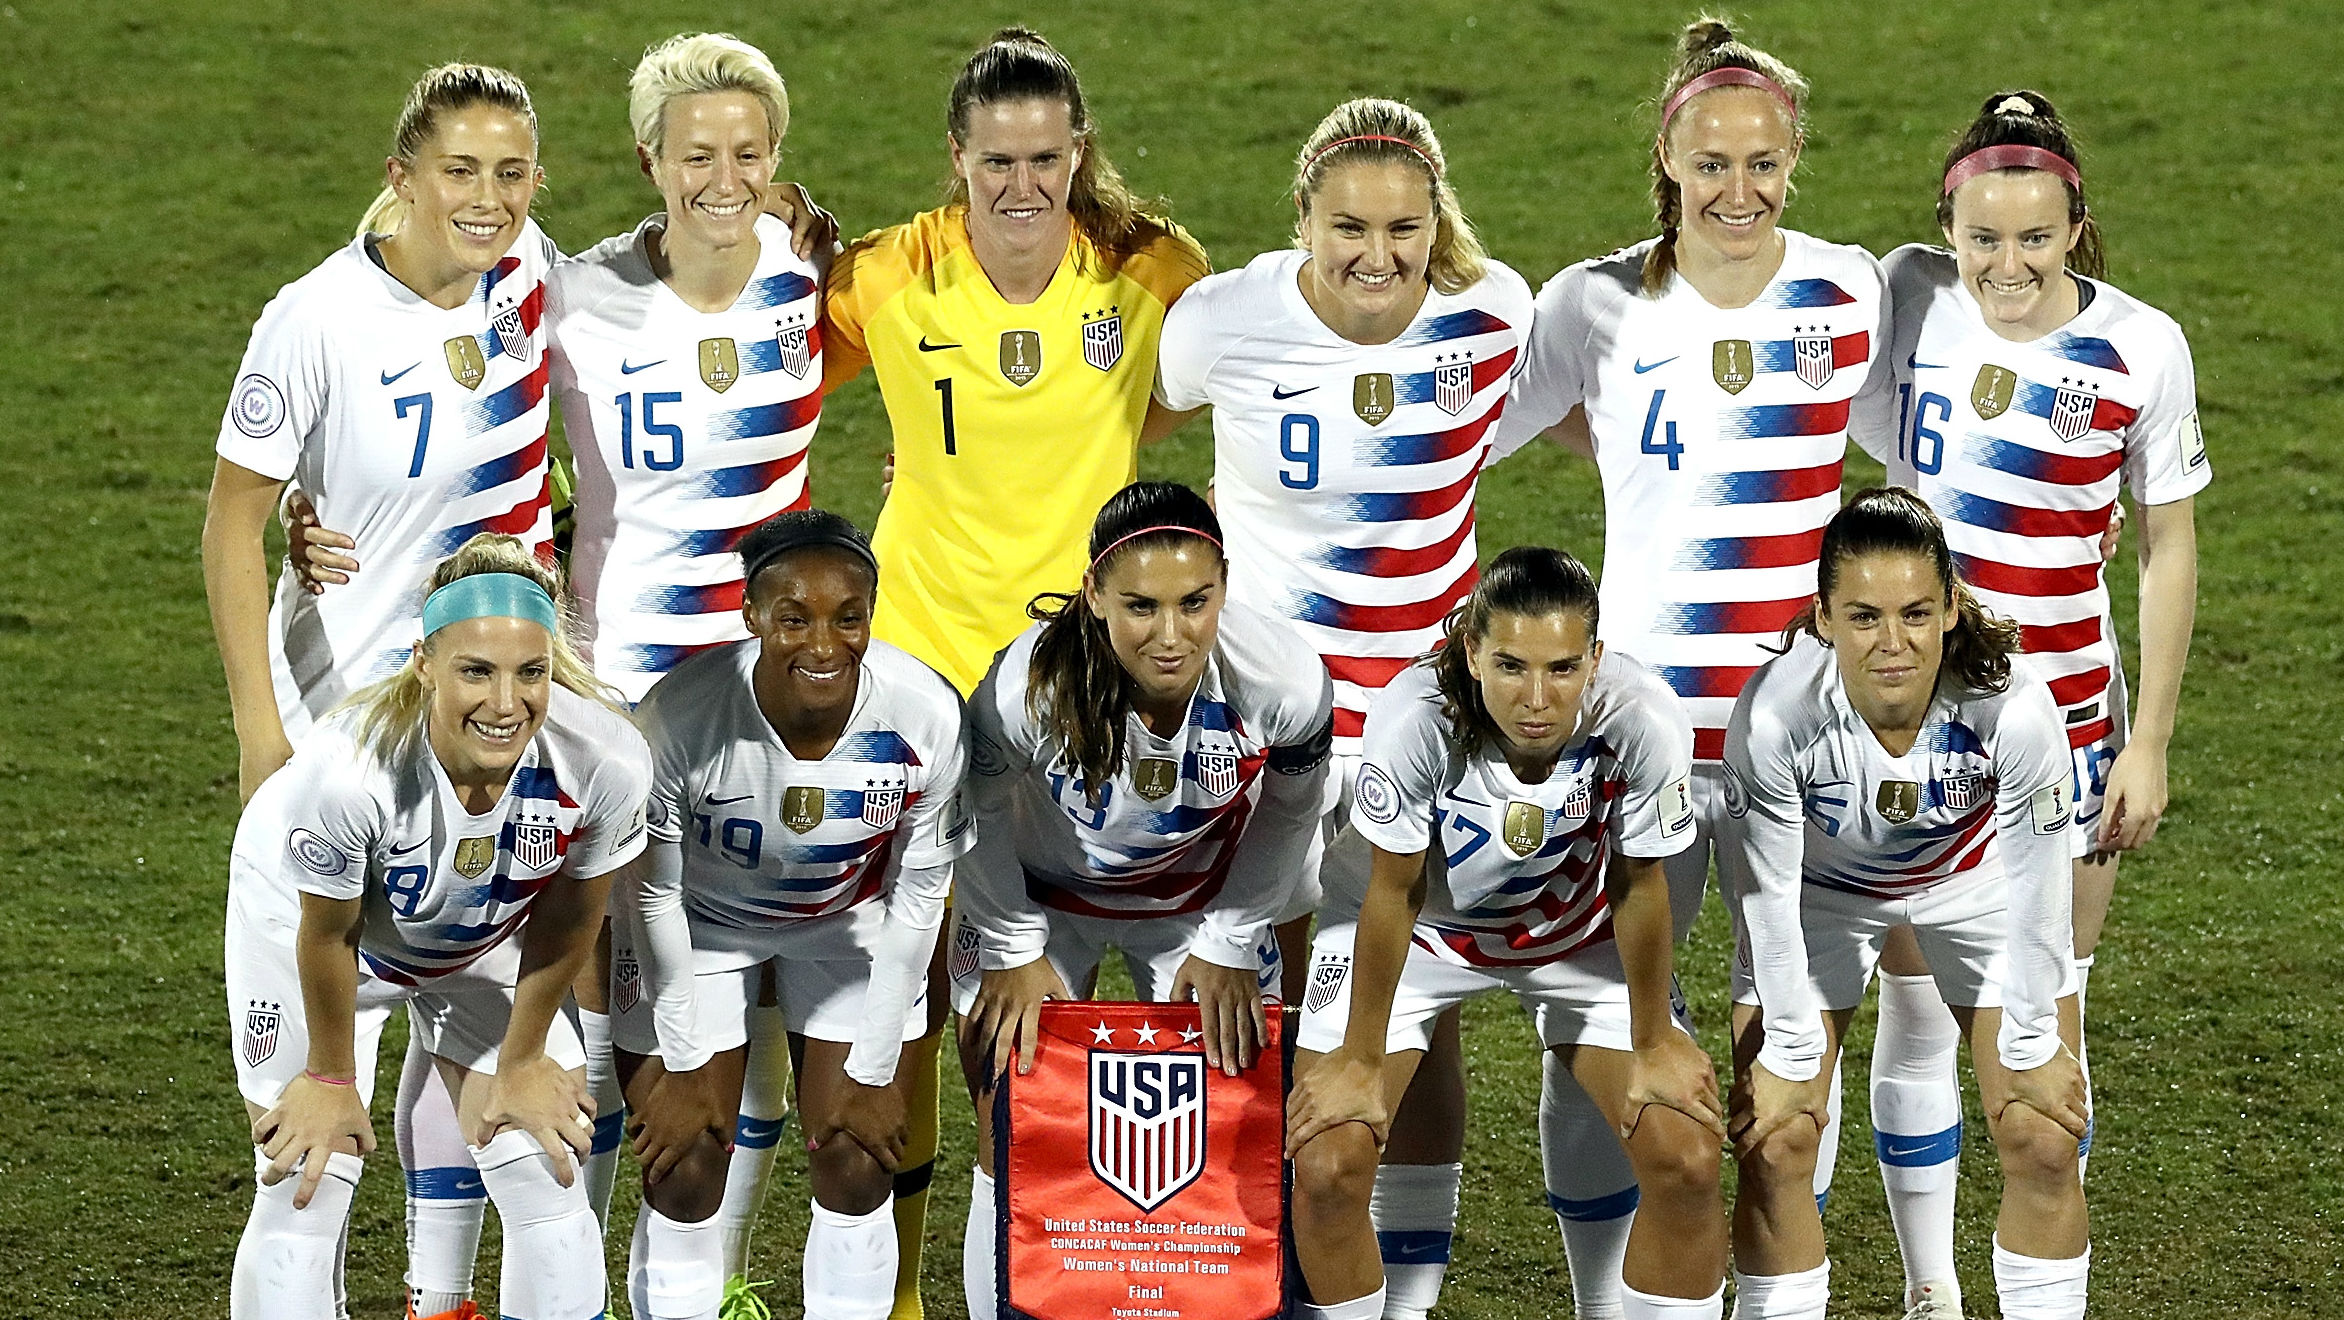 uswnt news: u.s. soccer announces 10 games in 2019 leading up to